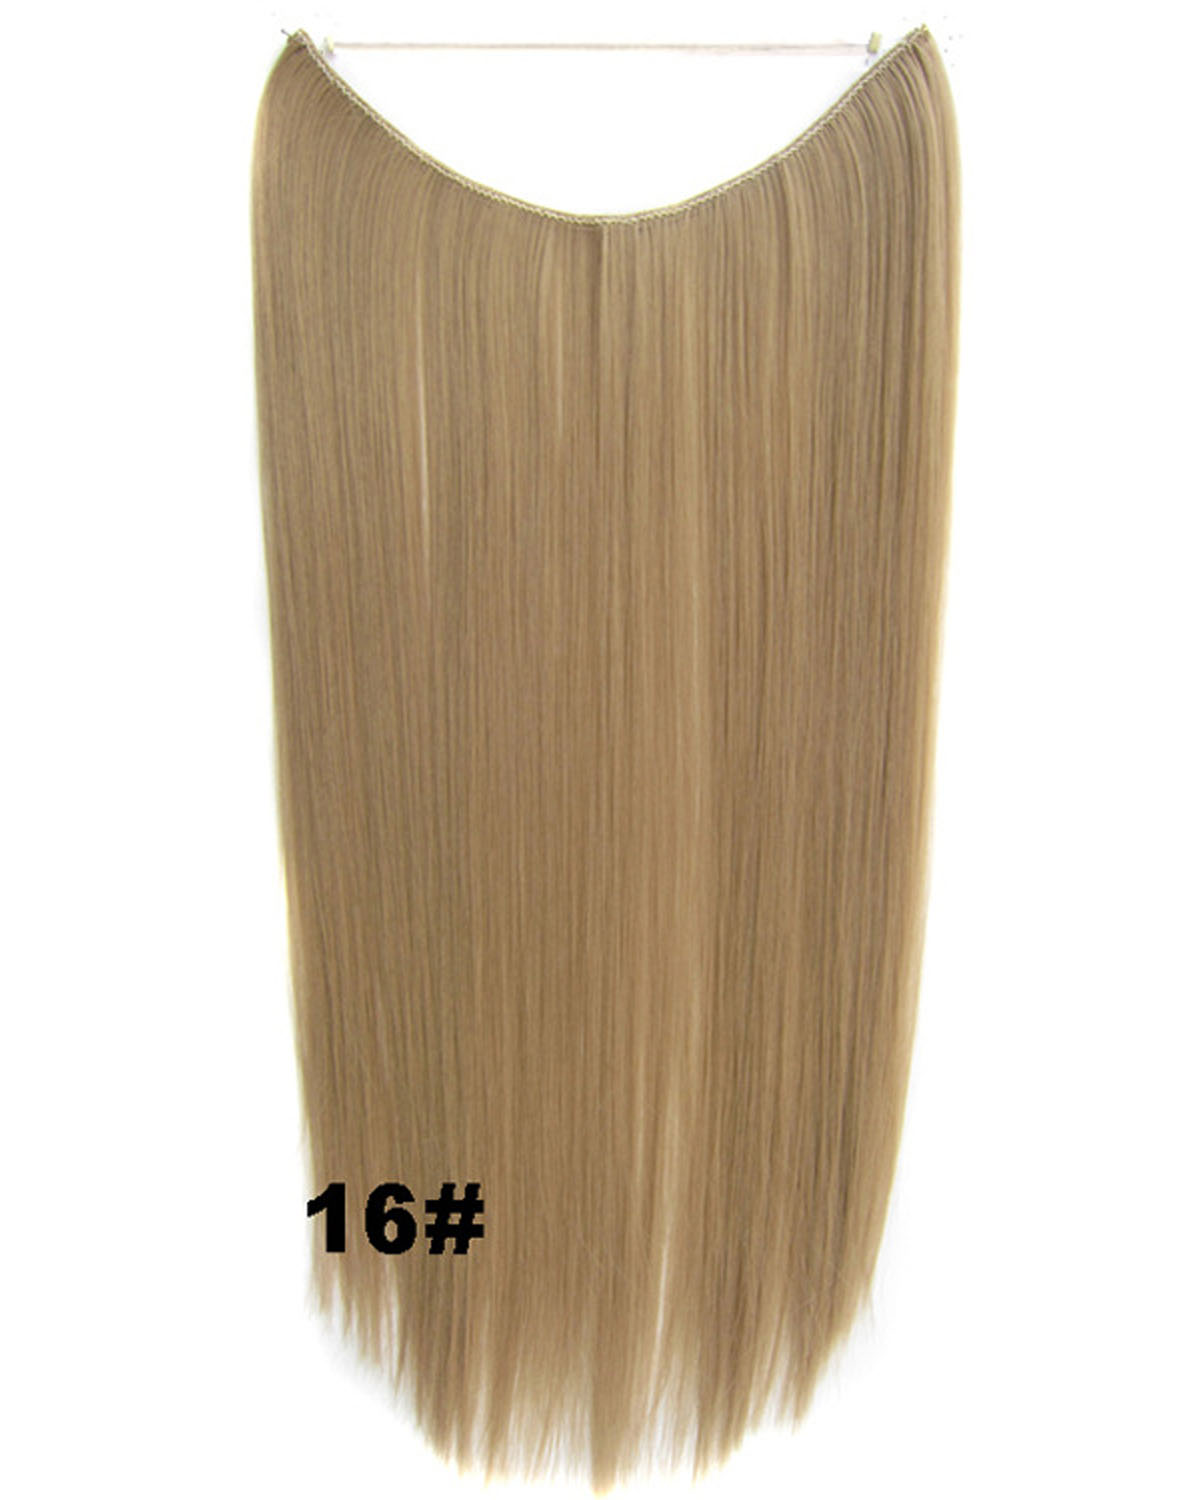 22 Inch Straight and Long Smooth One Piece Miracle Wire Flip in Synthetic Hair Extension FIH666 16# 50g 55cm